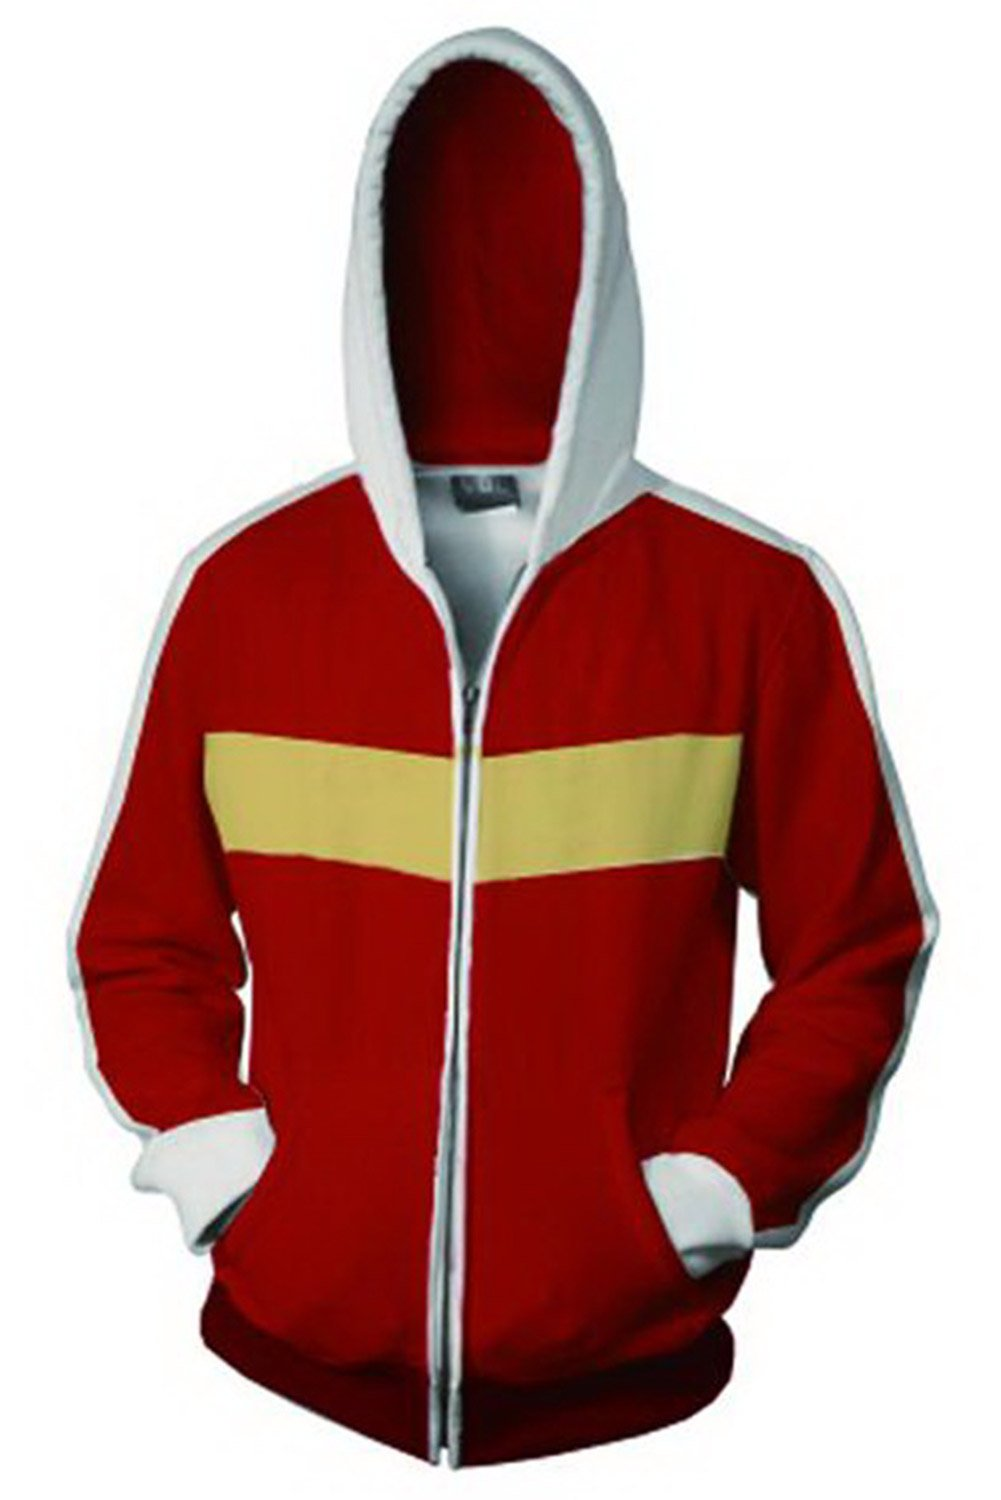 Voltron: Defender of the Universe Hoodie Keith Akira Kogane Zip Up Sweatshirt Unisex